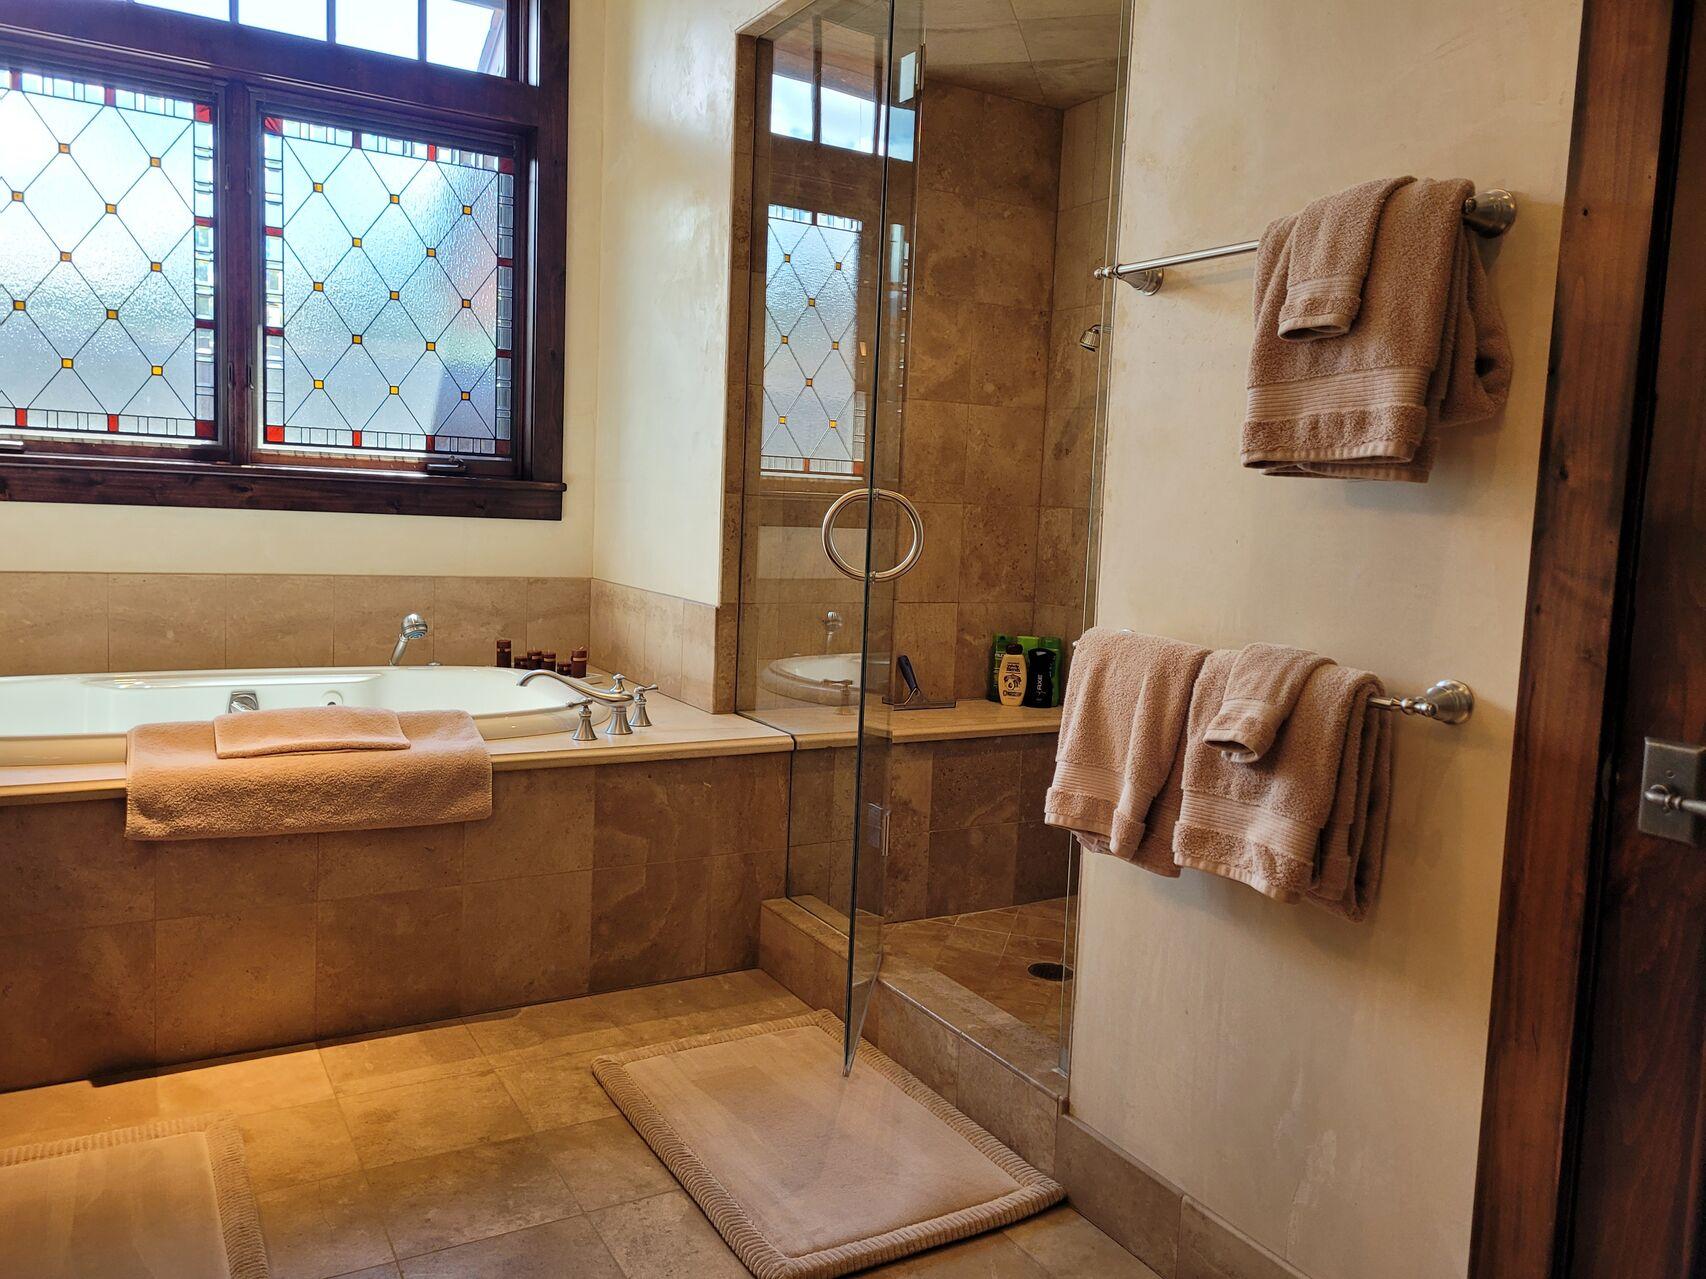 Luxury bathroom with brown tile and walk-in shower